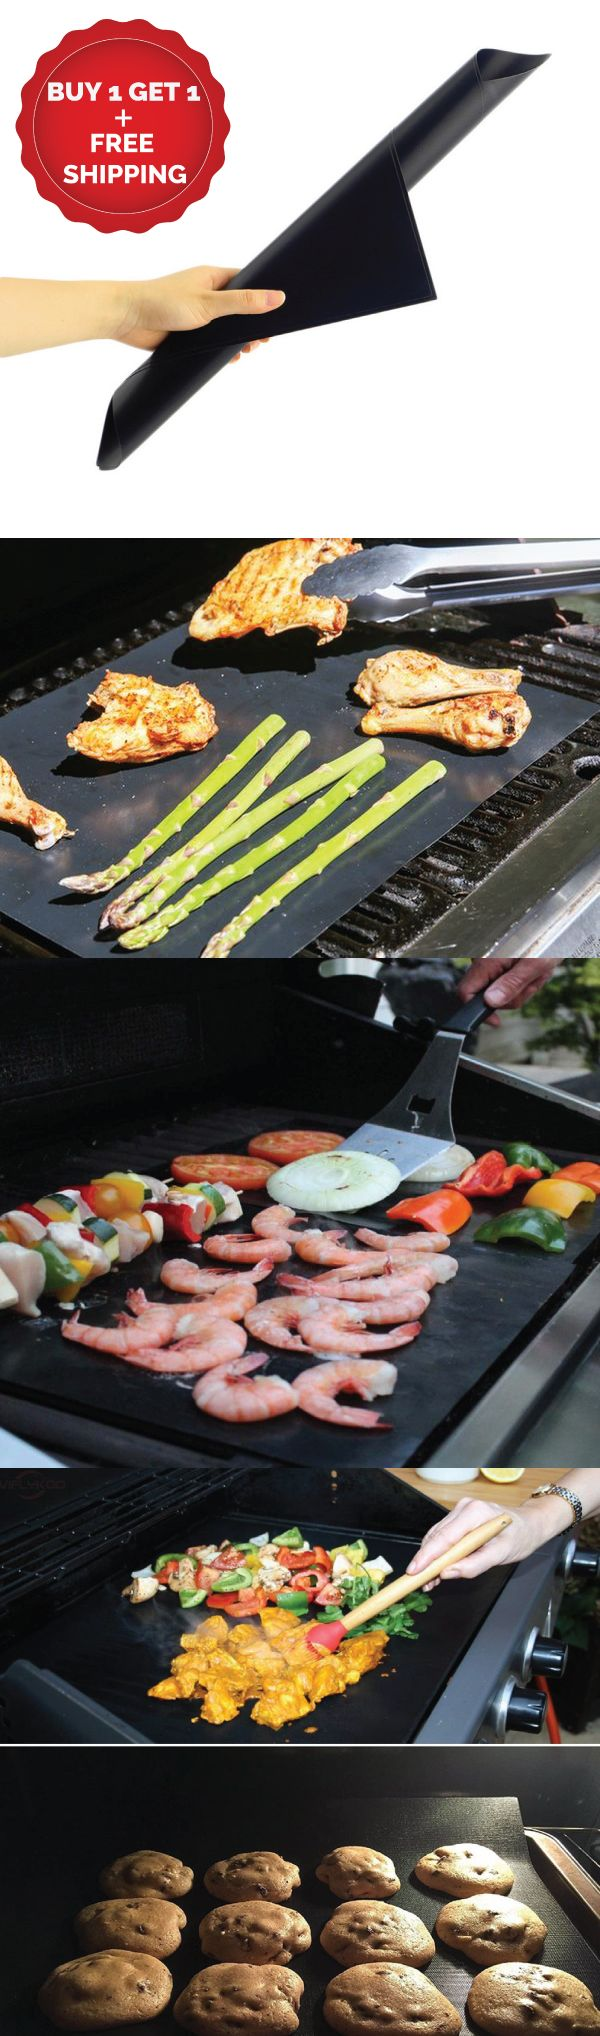 BBQ Grill Mat Sheet (Buy1-Get1 Set) They are made from the highest grade non-stick material.  100% PFOA free premium FDA approved PTFE coating just like your favorite nonstick pan. They are specially designed to cook your food evenly in temperatures up to 500°F. Easily cut the BBQ sheets to any size or shape to fit your needs. Use as a cooking sheet, vegetable basket, aluminum foil pan liner, baking sheet, microwave liner, drip catcher, camp grill, dehydrator sheet and of course a grilling…